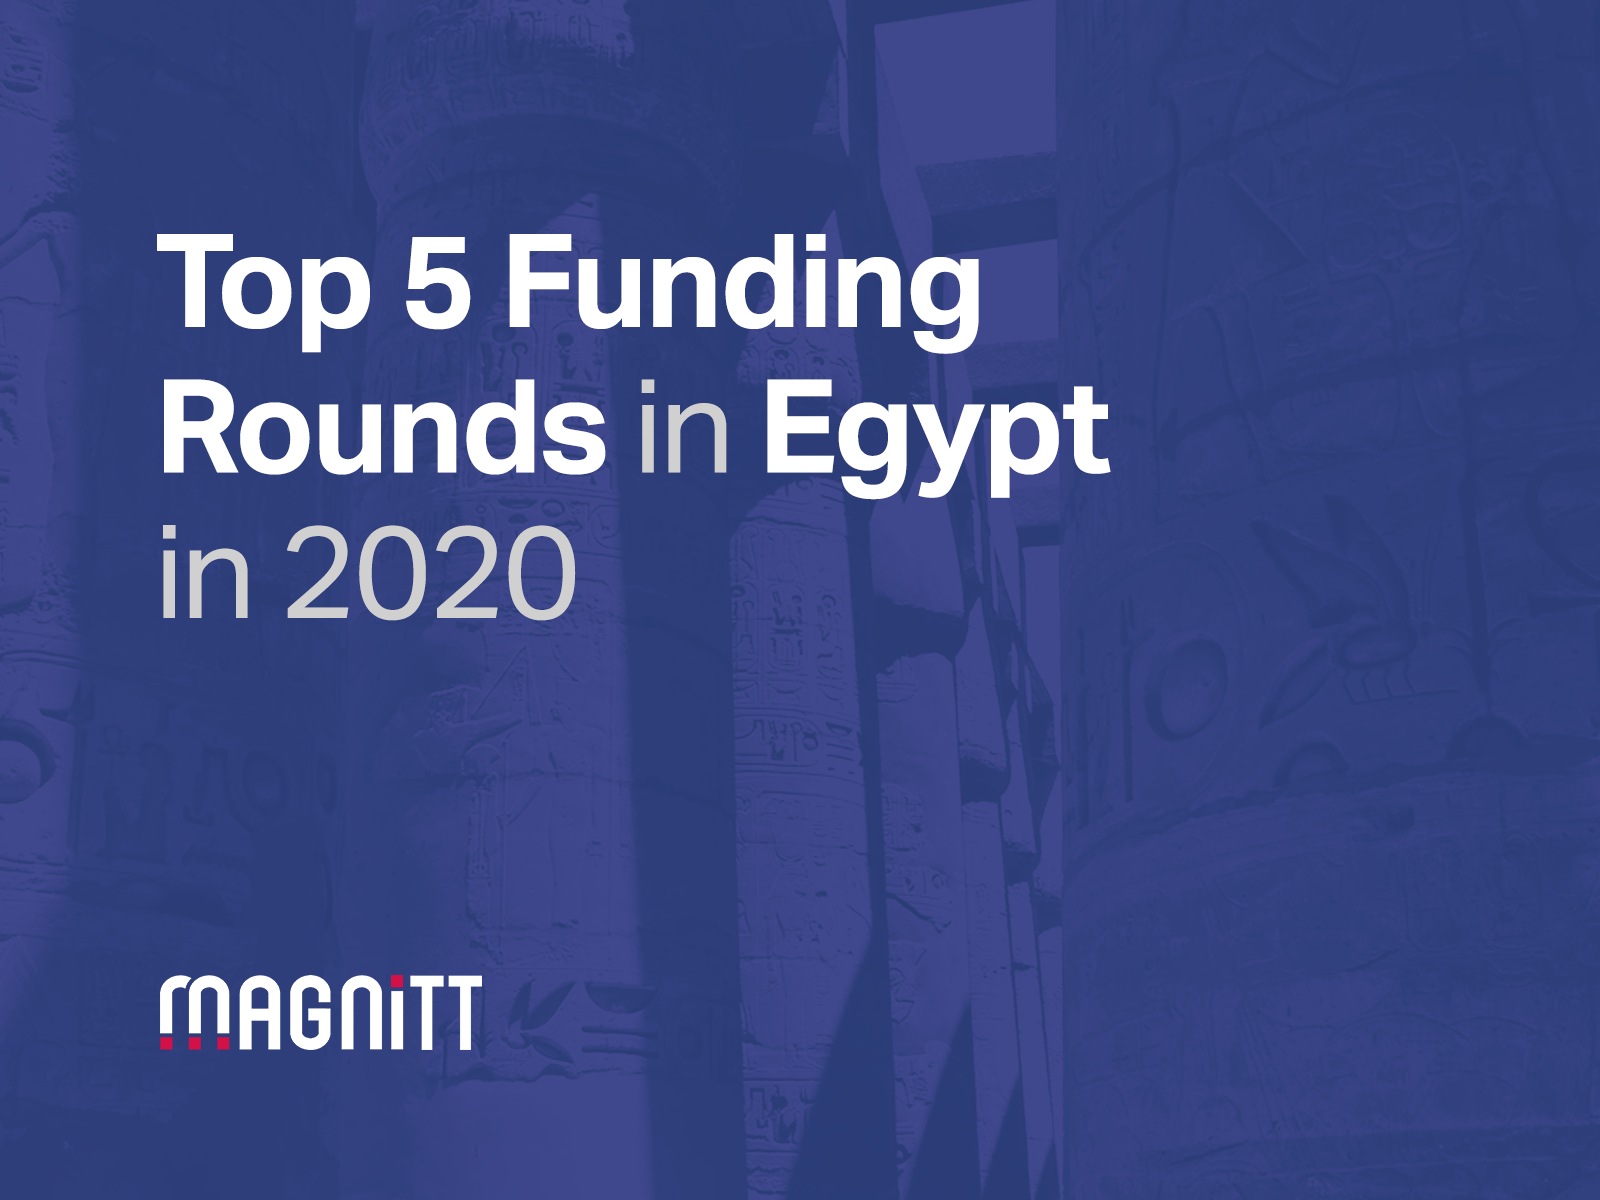 Top 5 funding rounds in Egypt in 2020